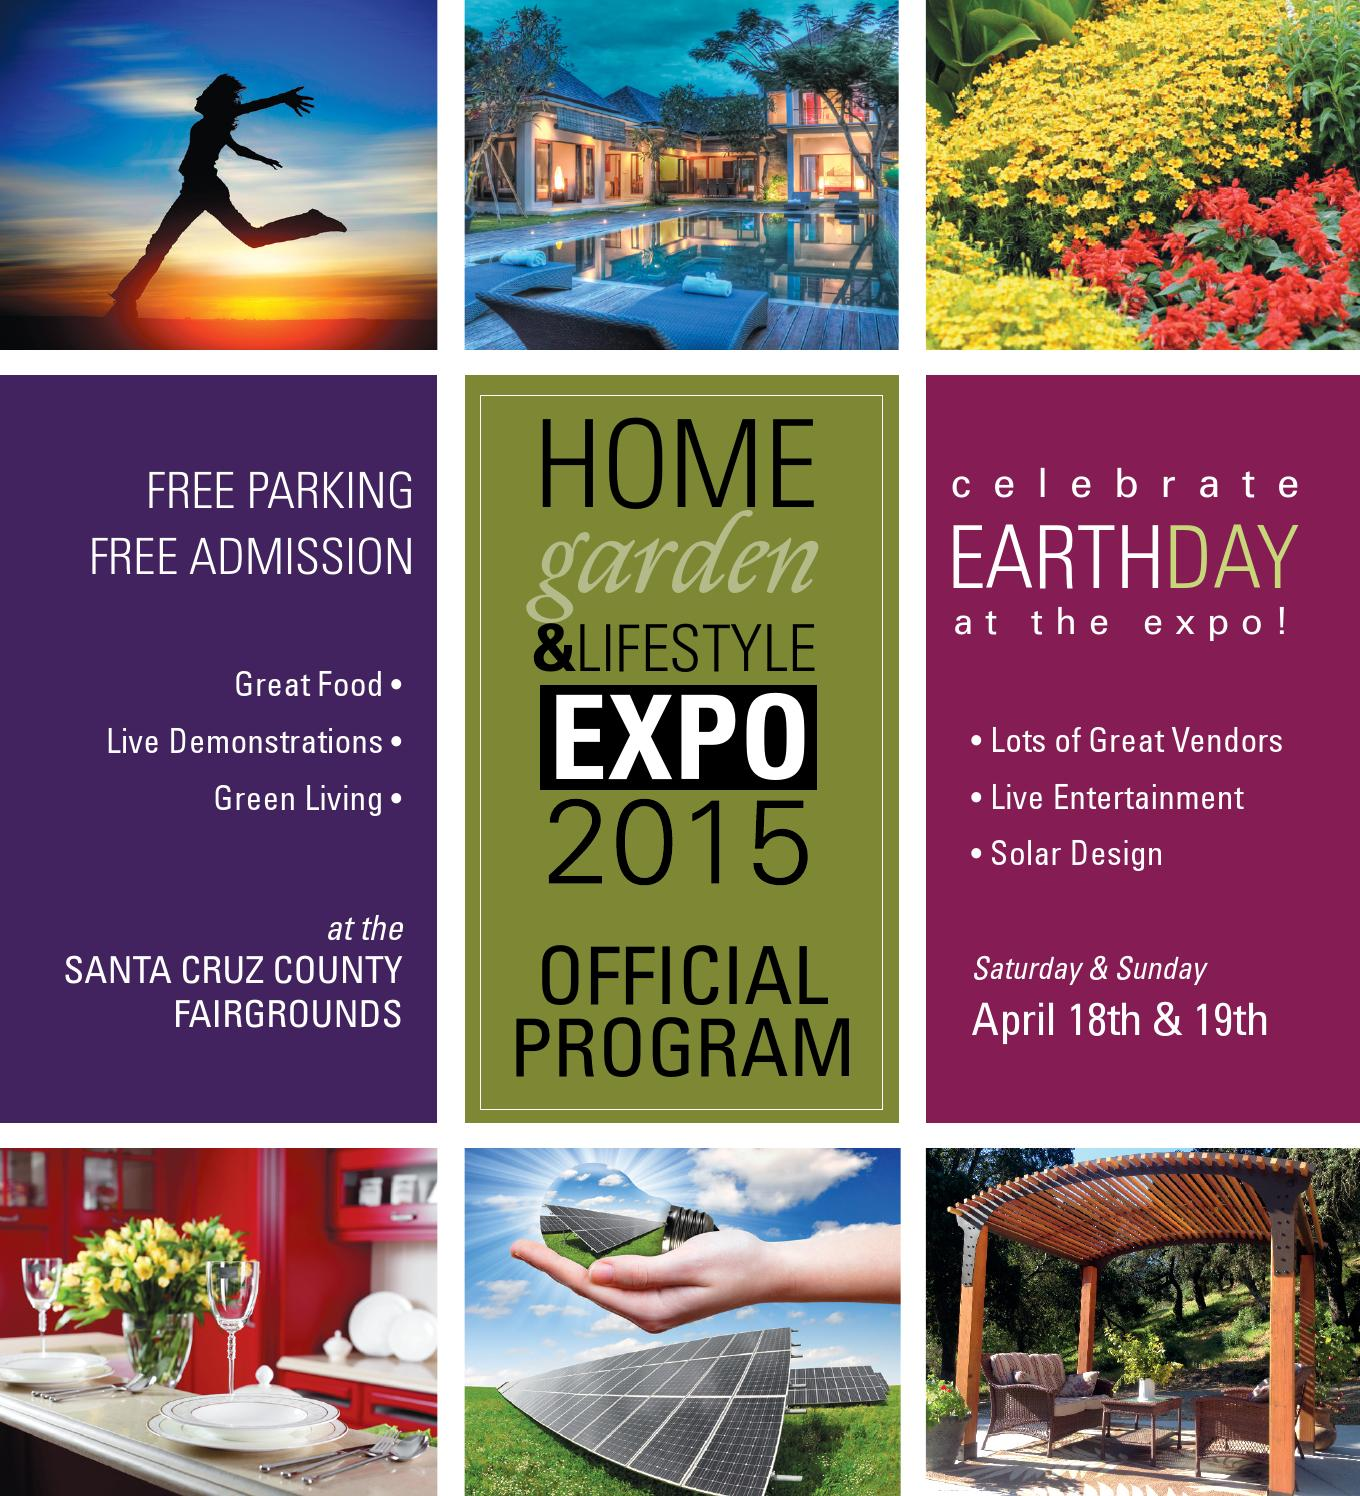 Home garden lifestyle expo 2015 by times publishing for Home decor expo 2015